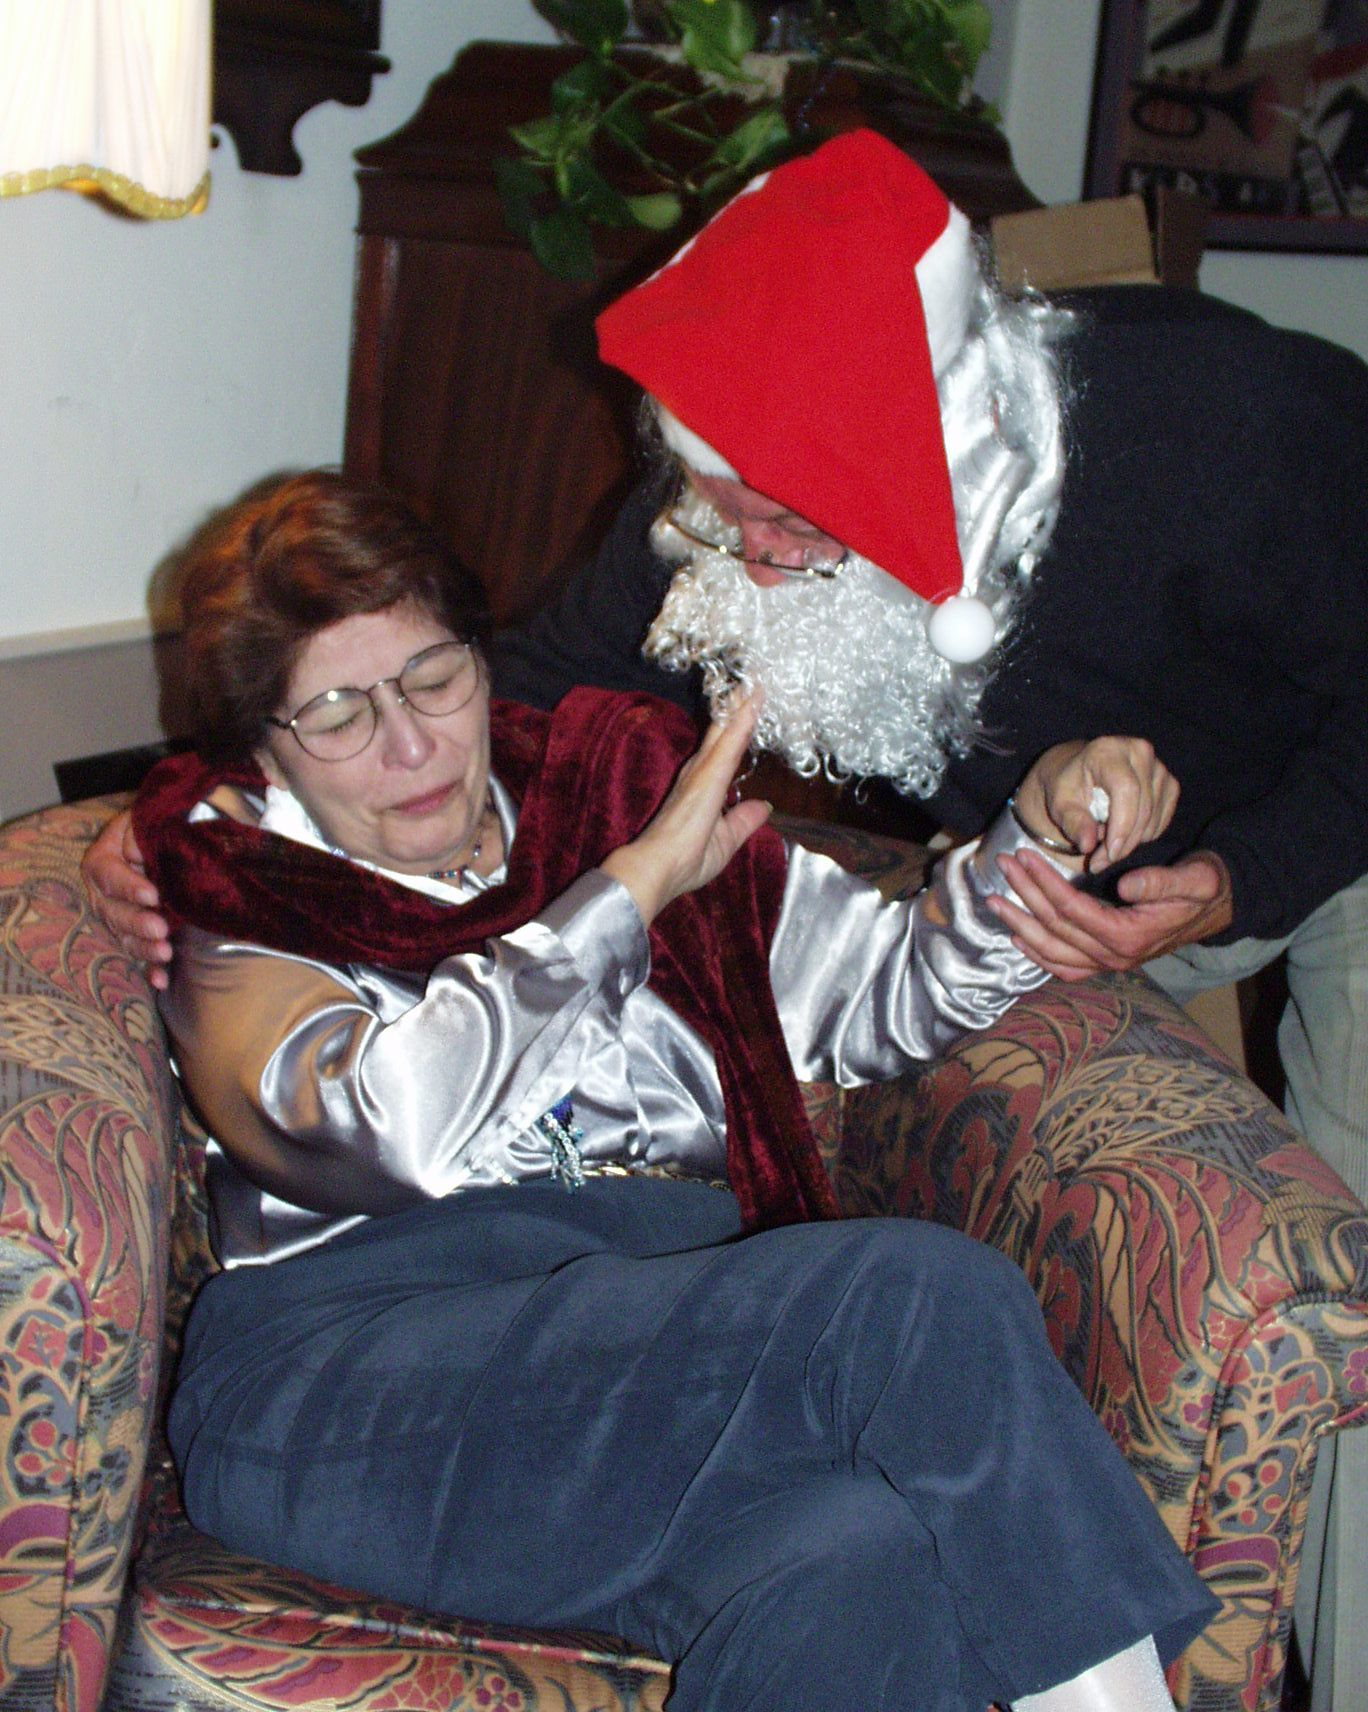 Lois is fending off Santa Dick, 2000 (Photo credit: San Diego video producer Patty Mooney of Crystal Pyramid Productions)